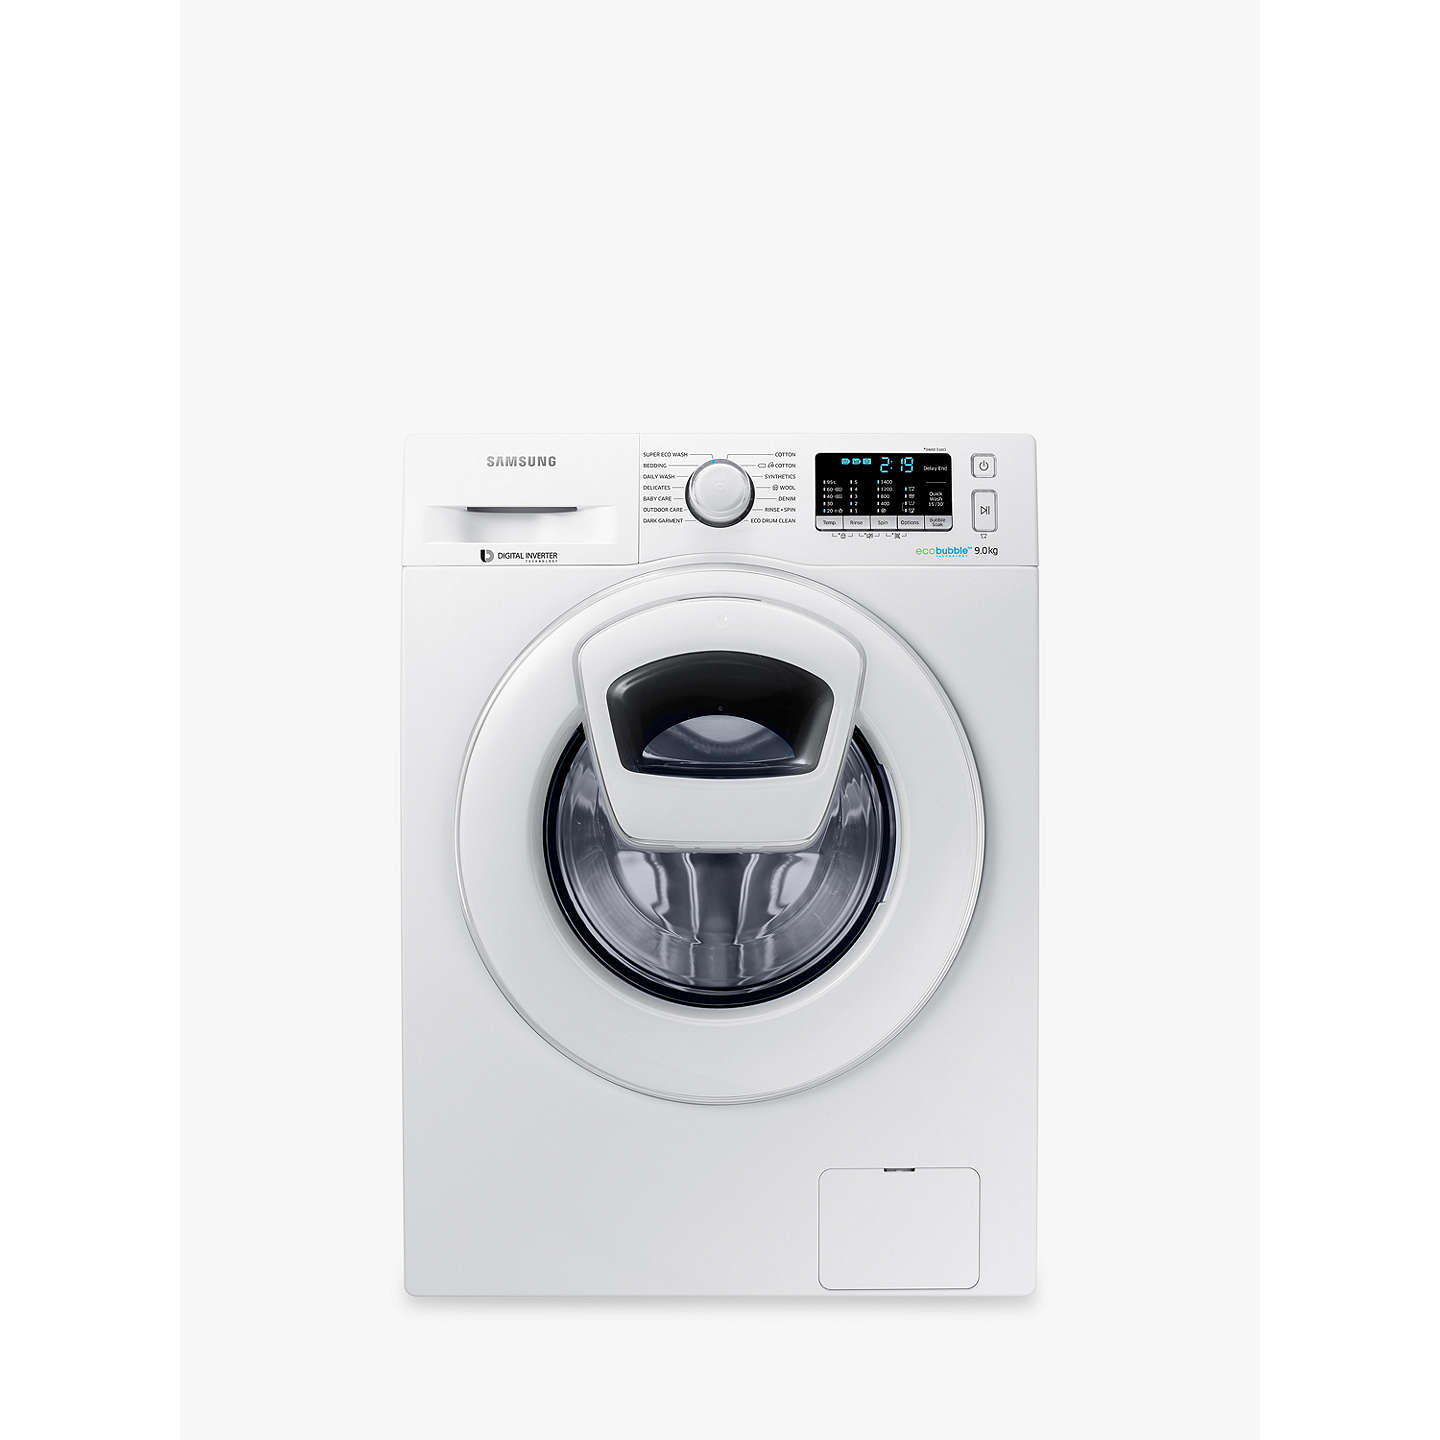 Samsung addwash ww90k5410wweu washing machine 9kg load a buysamsung addwash ww90k5410wweu washing machine 9kg load a energy rating 1400rpm biocorpaavc Images